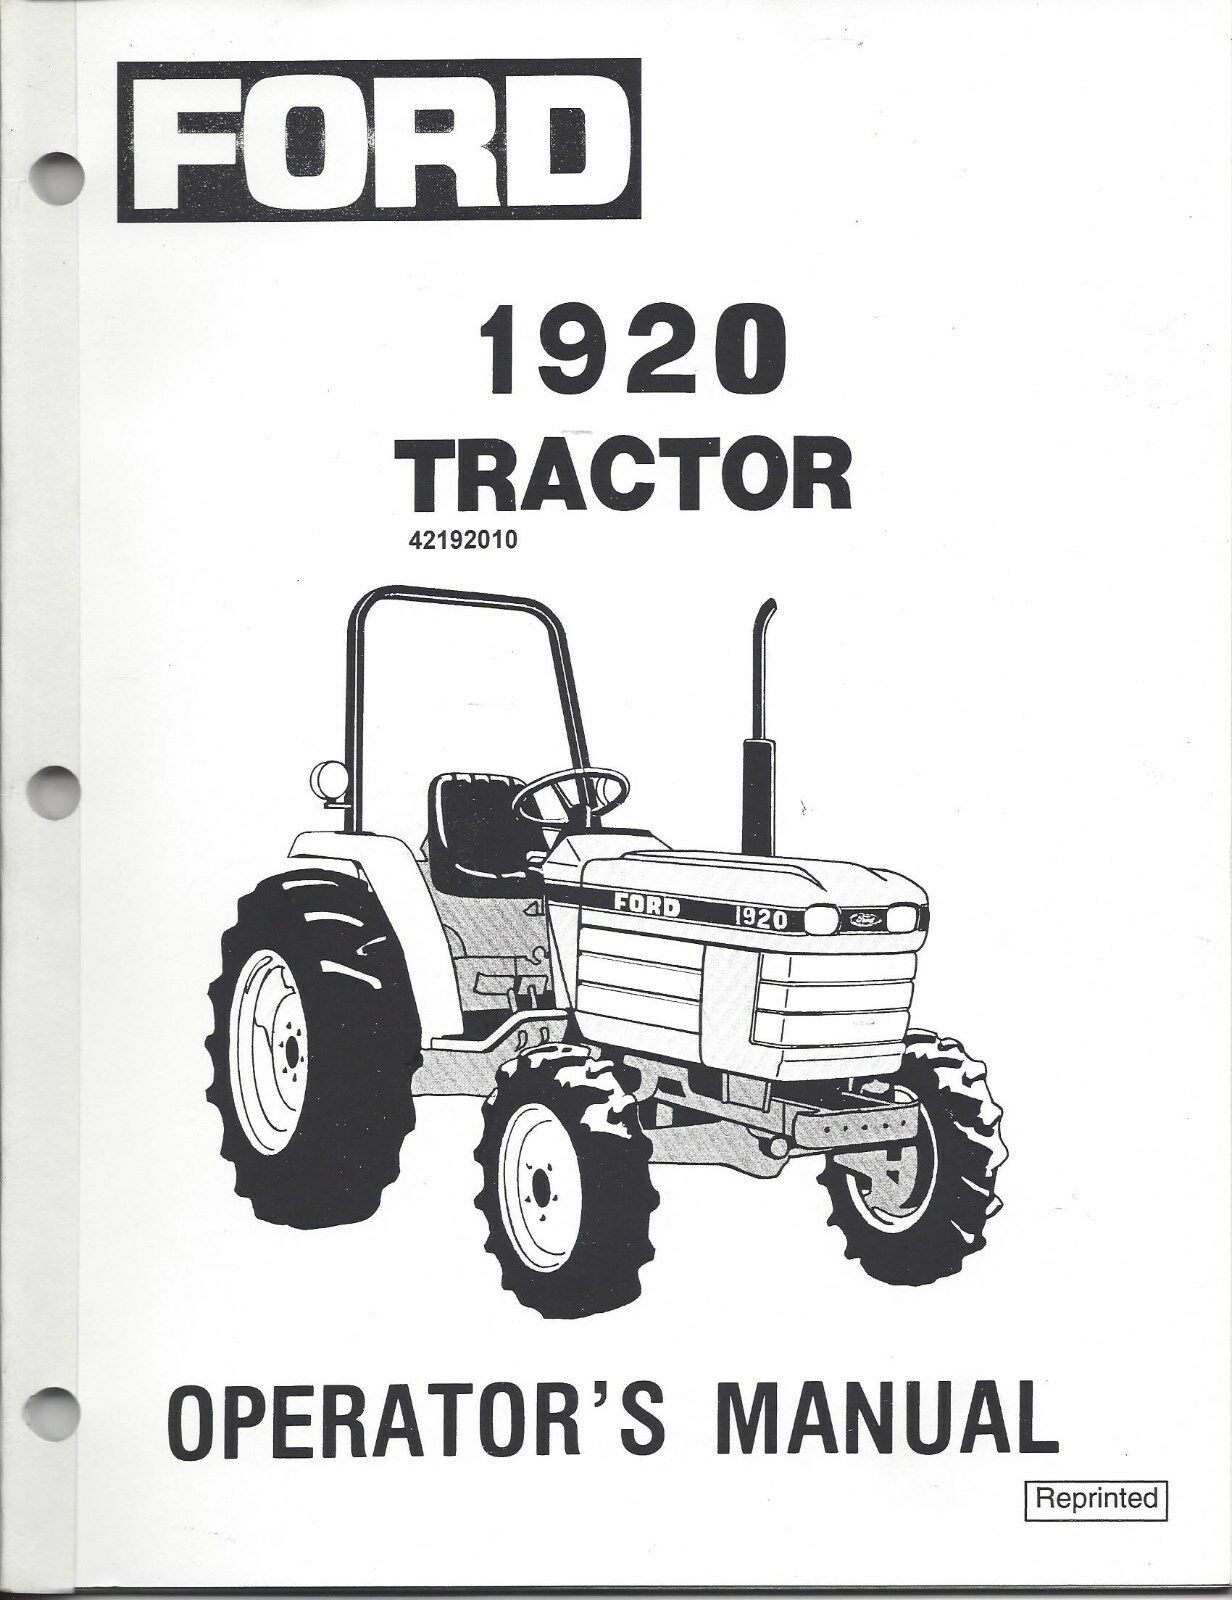 Ford New Holland 1920 Tractor Operator Manual 42192010 1 of 1Only 1  available ...